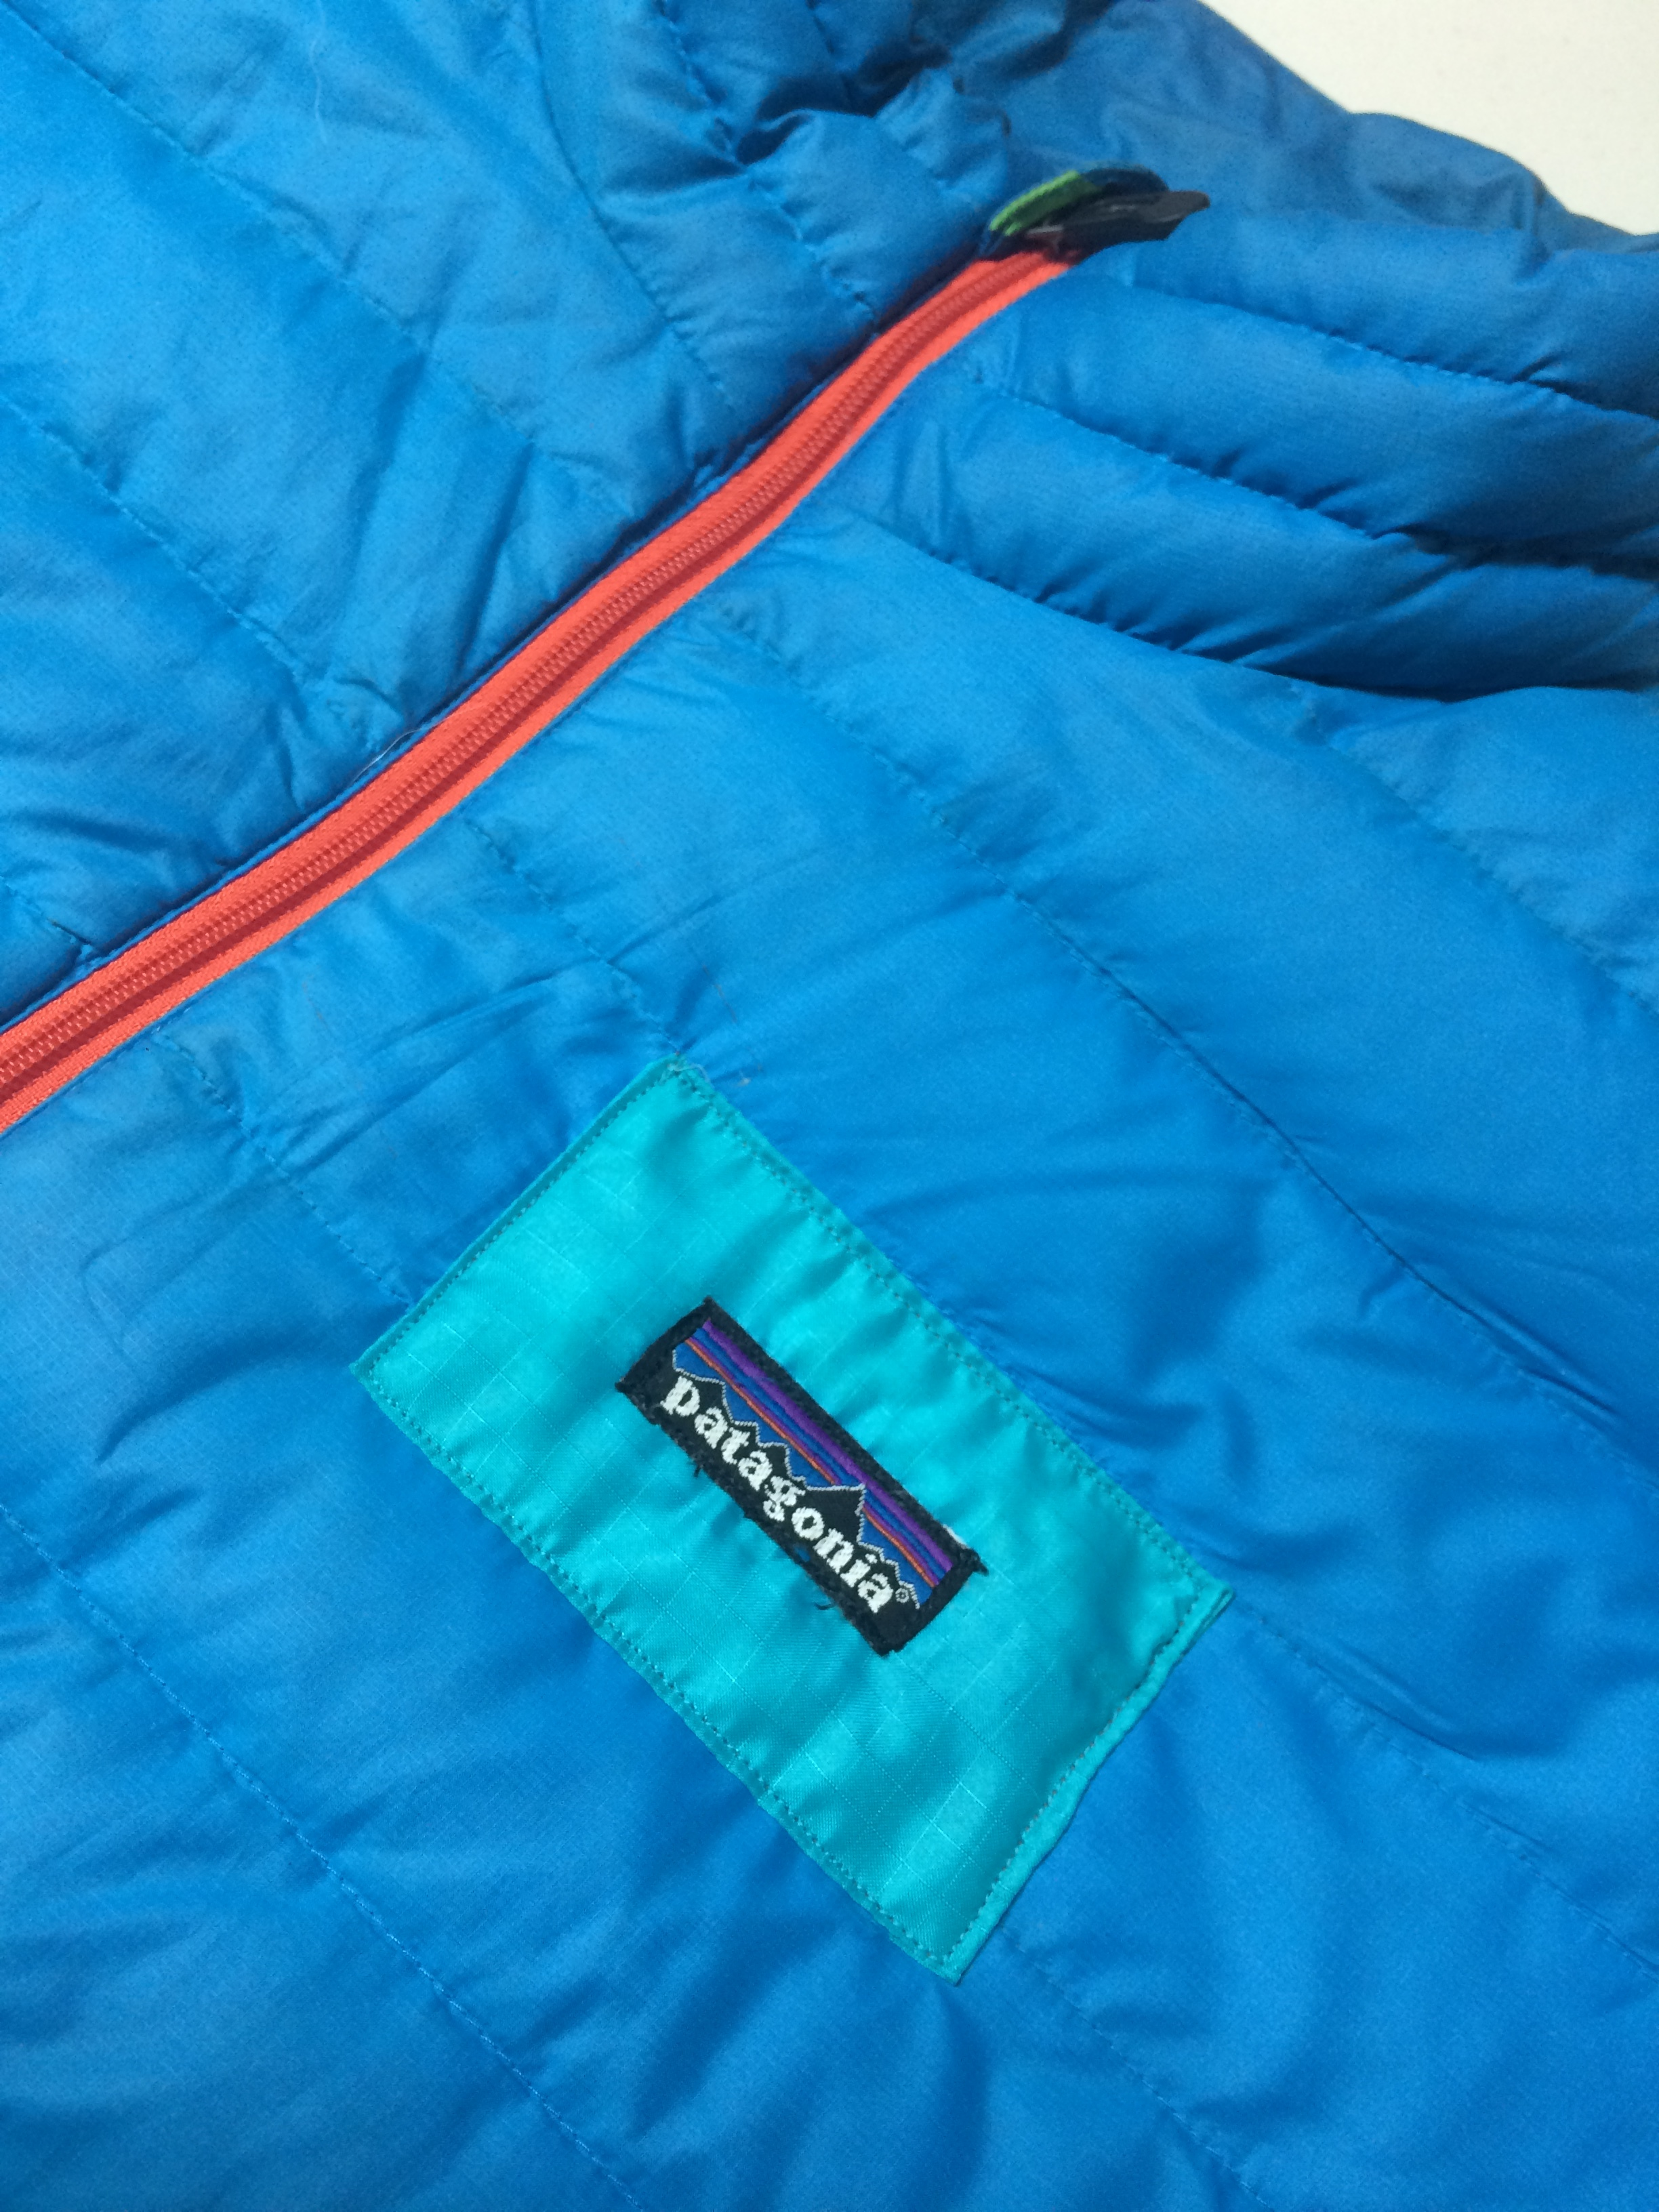 Simple patch on a puffy jacket. Not quite a perfect color match, but lots of character here.